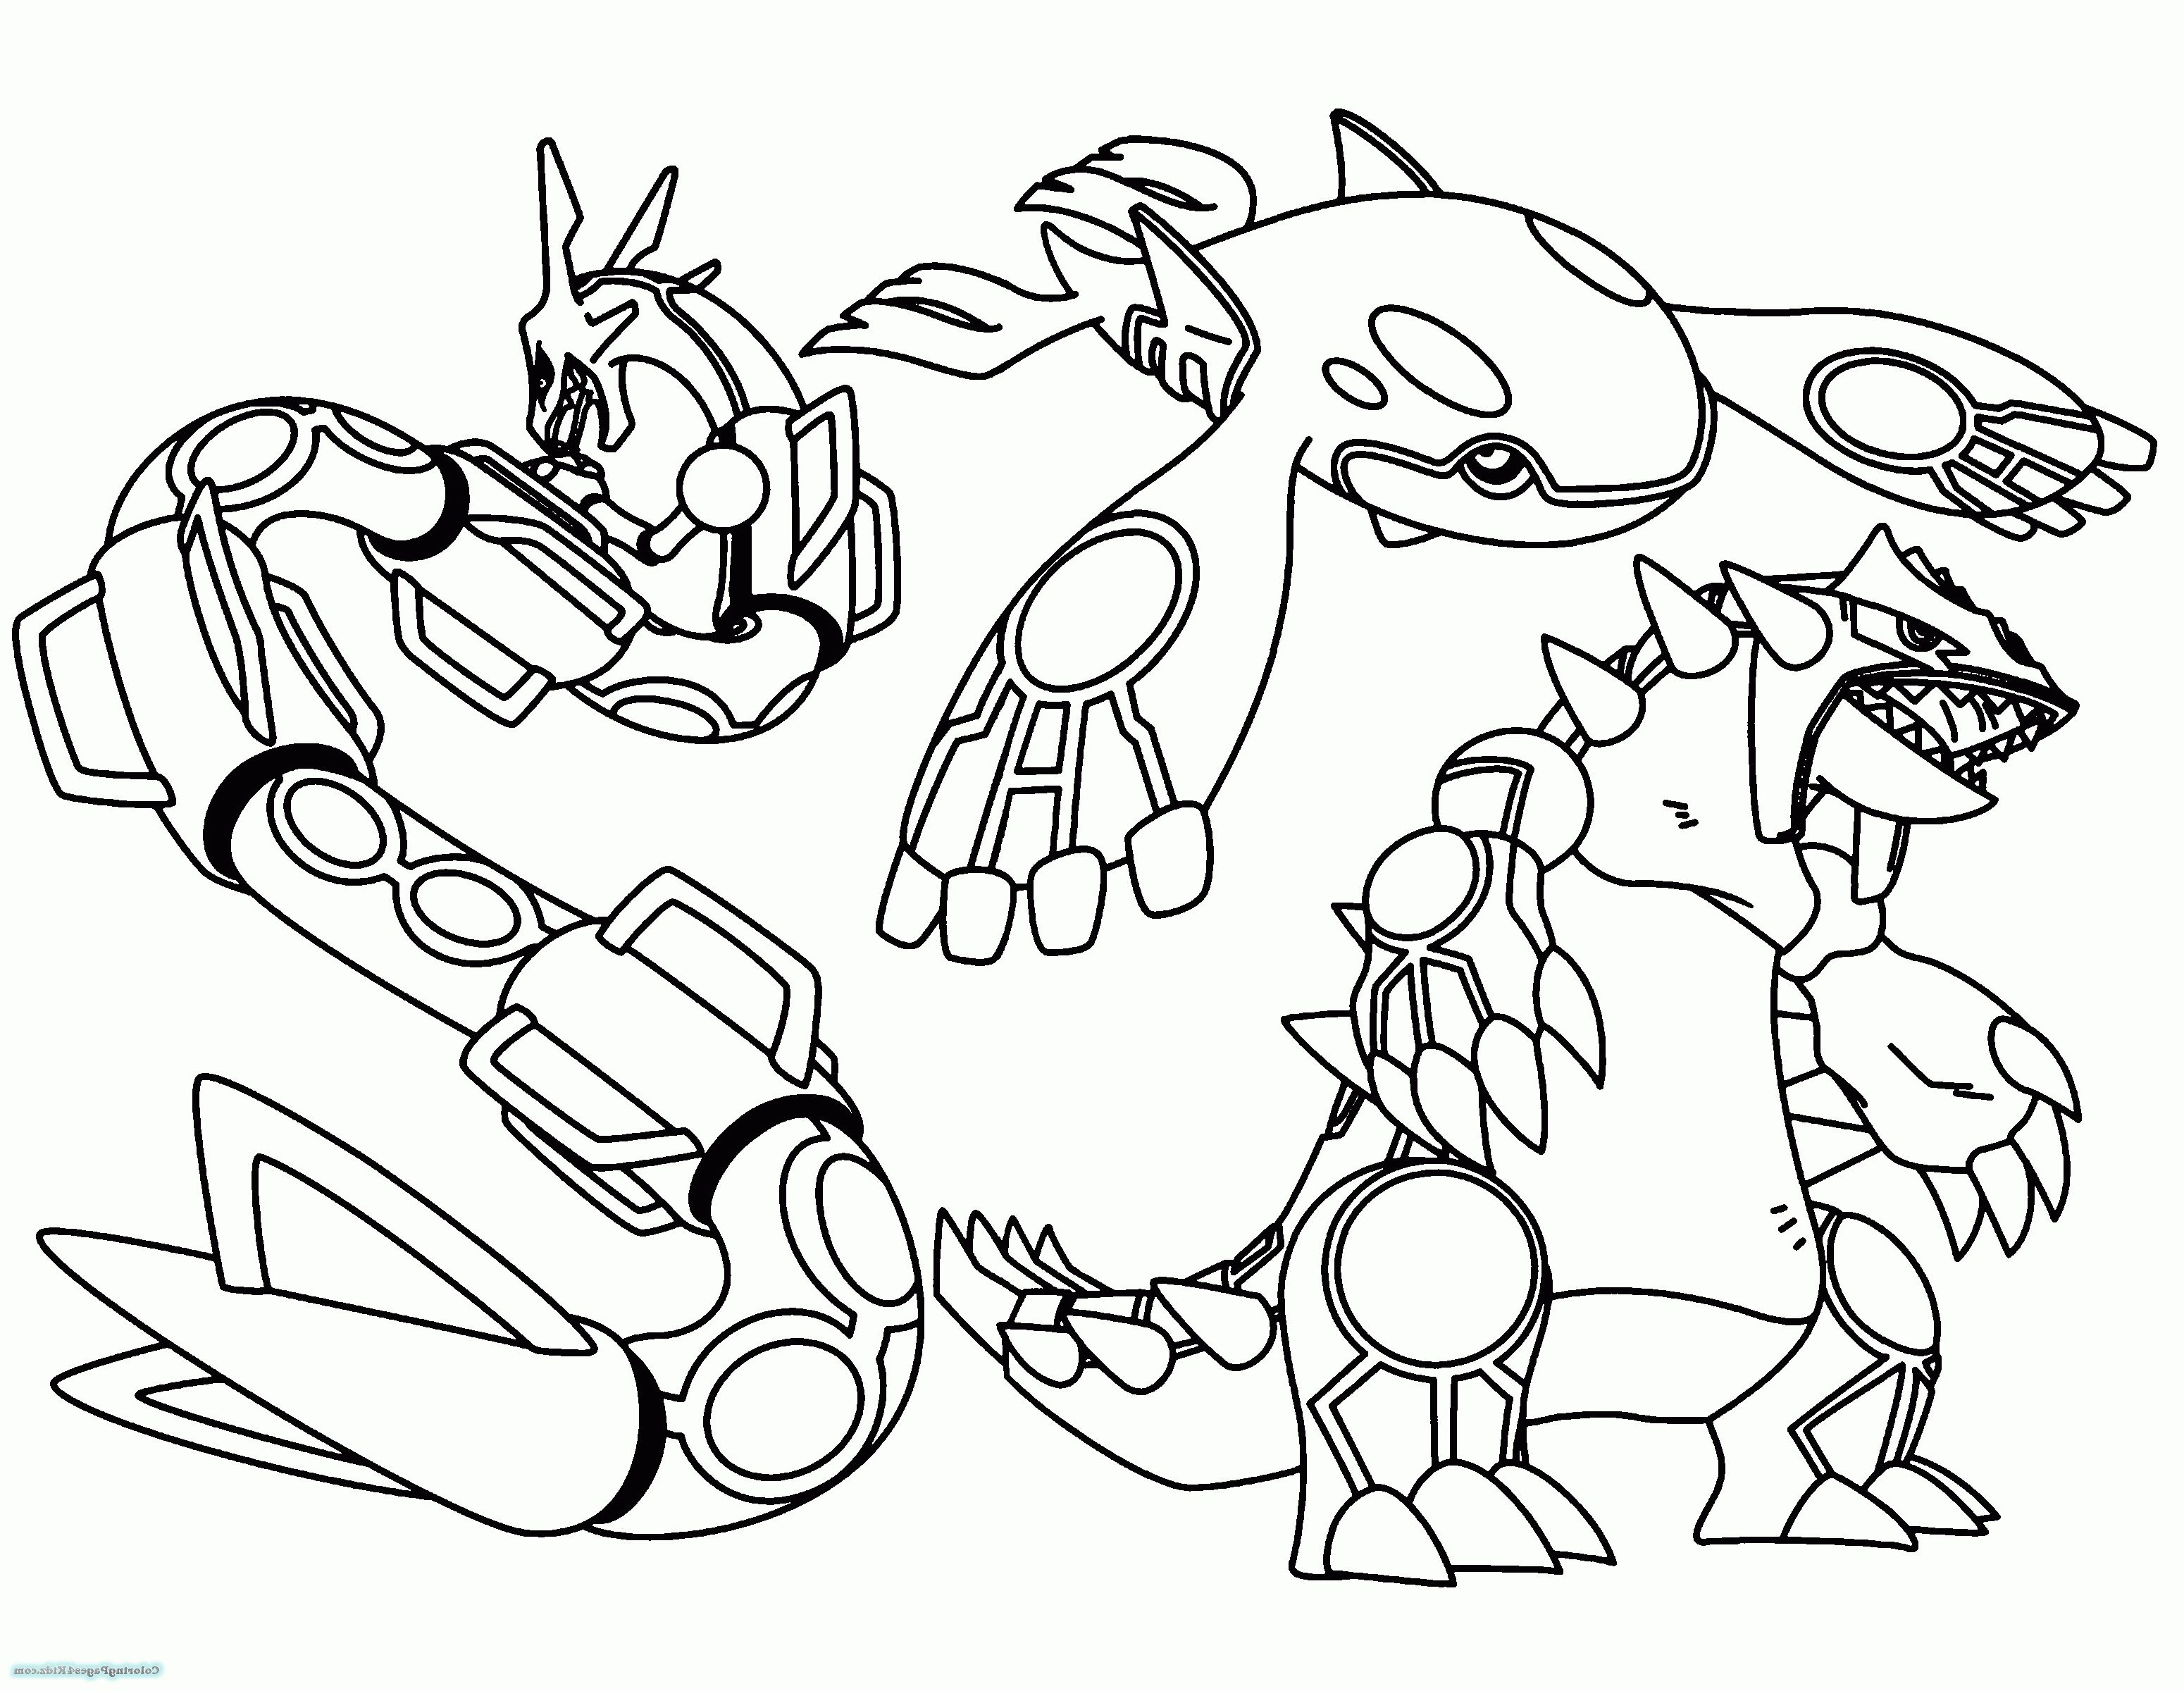 Pokemon Coloring Game 9ncm Pokemon Coloringe Free Printableses